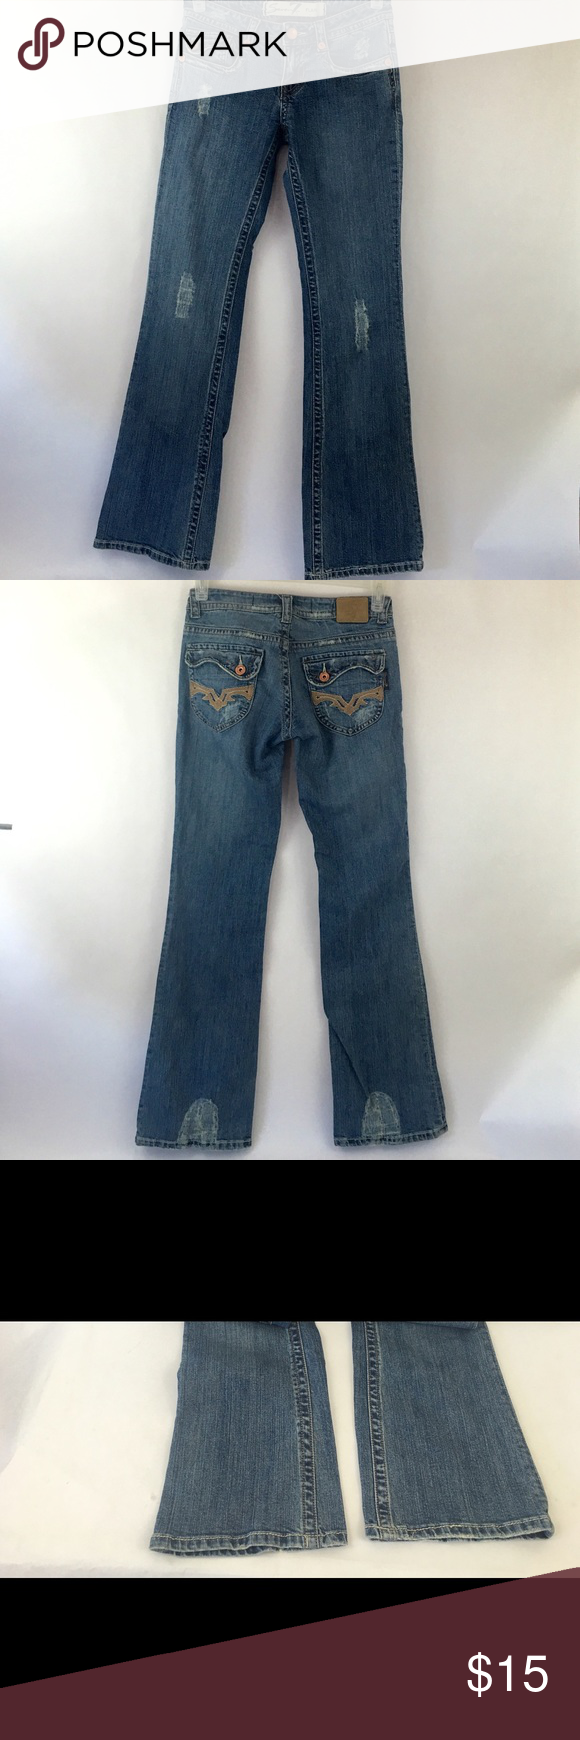 "Seven Jeans Women's Flare Jeans Size 28 Seven 7 Jeans Women's Flare size 28. Inseam 31.5"", Length 41"", Waist 15.5"". Great with heels! Seven7 Jeans Flare & Wide Leg"